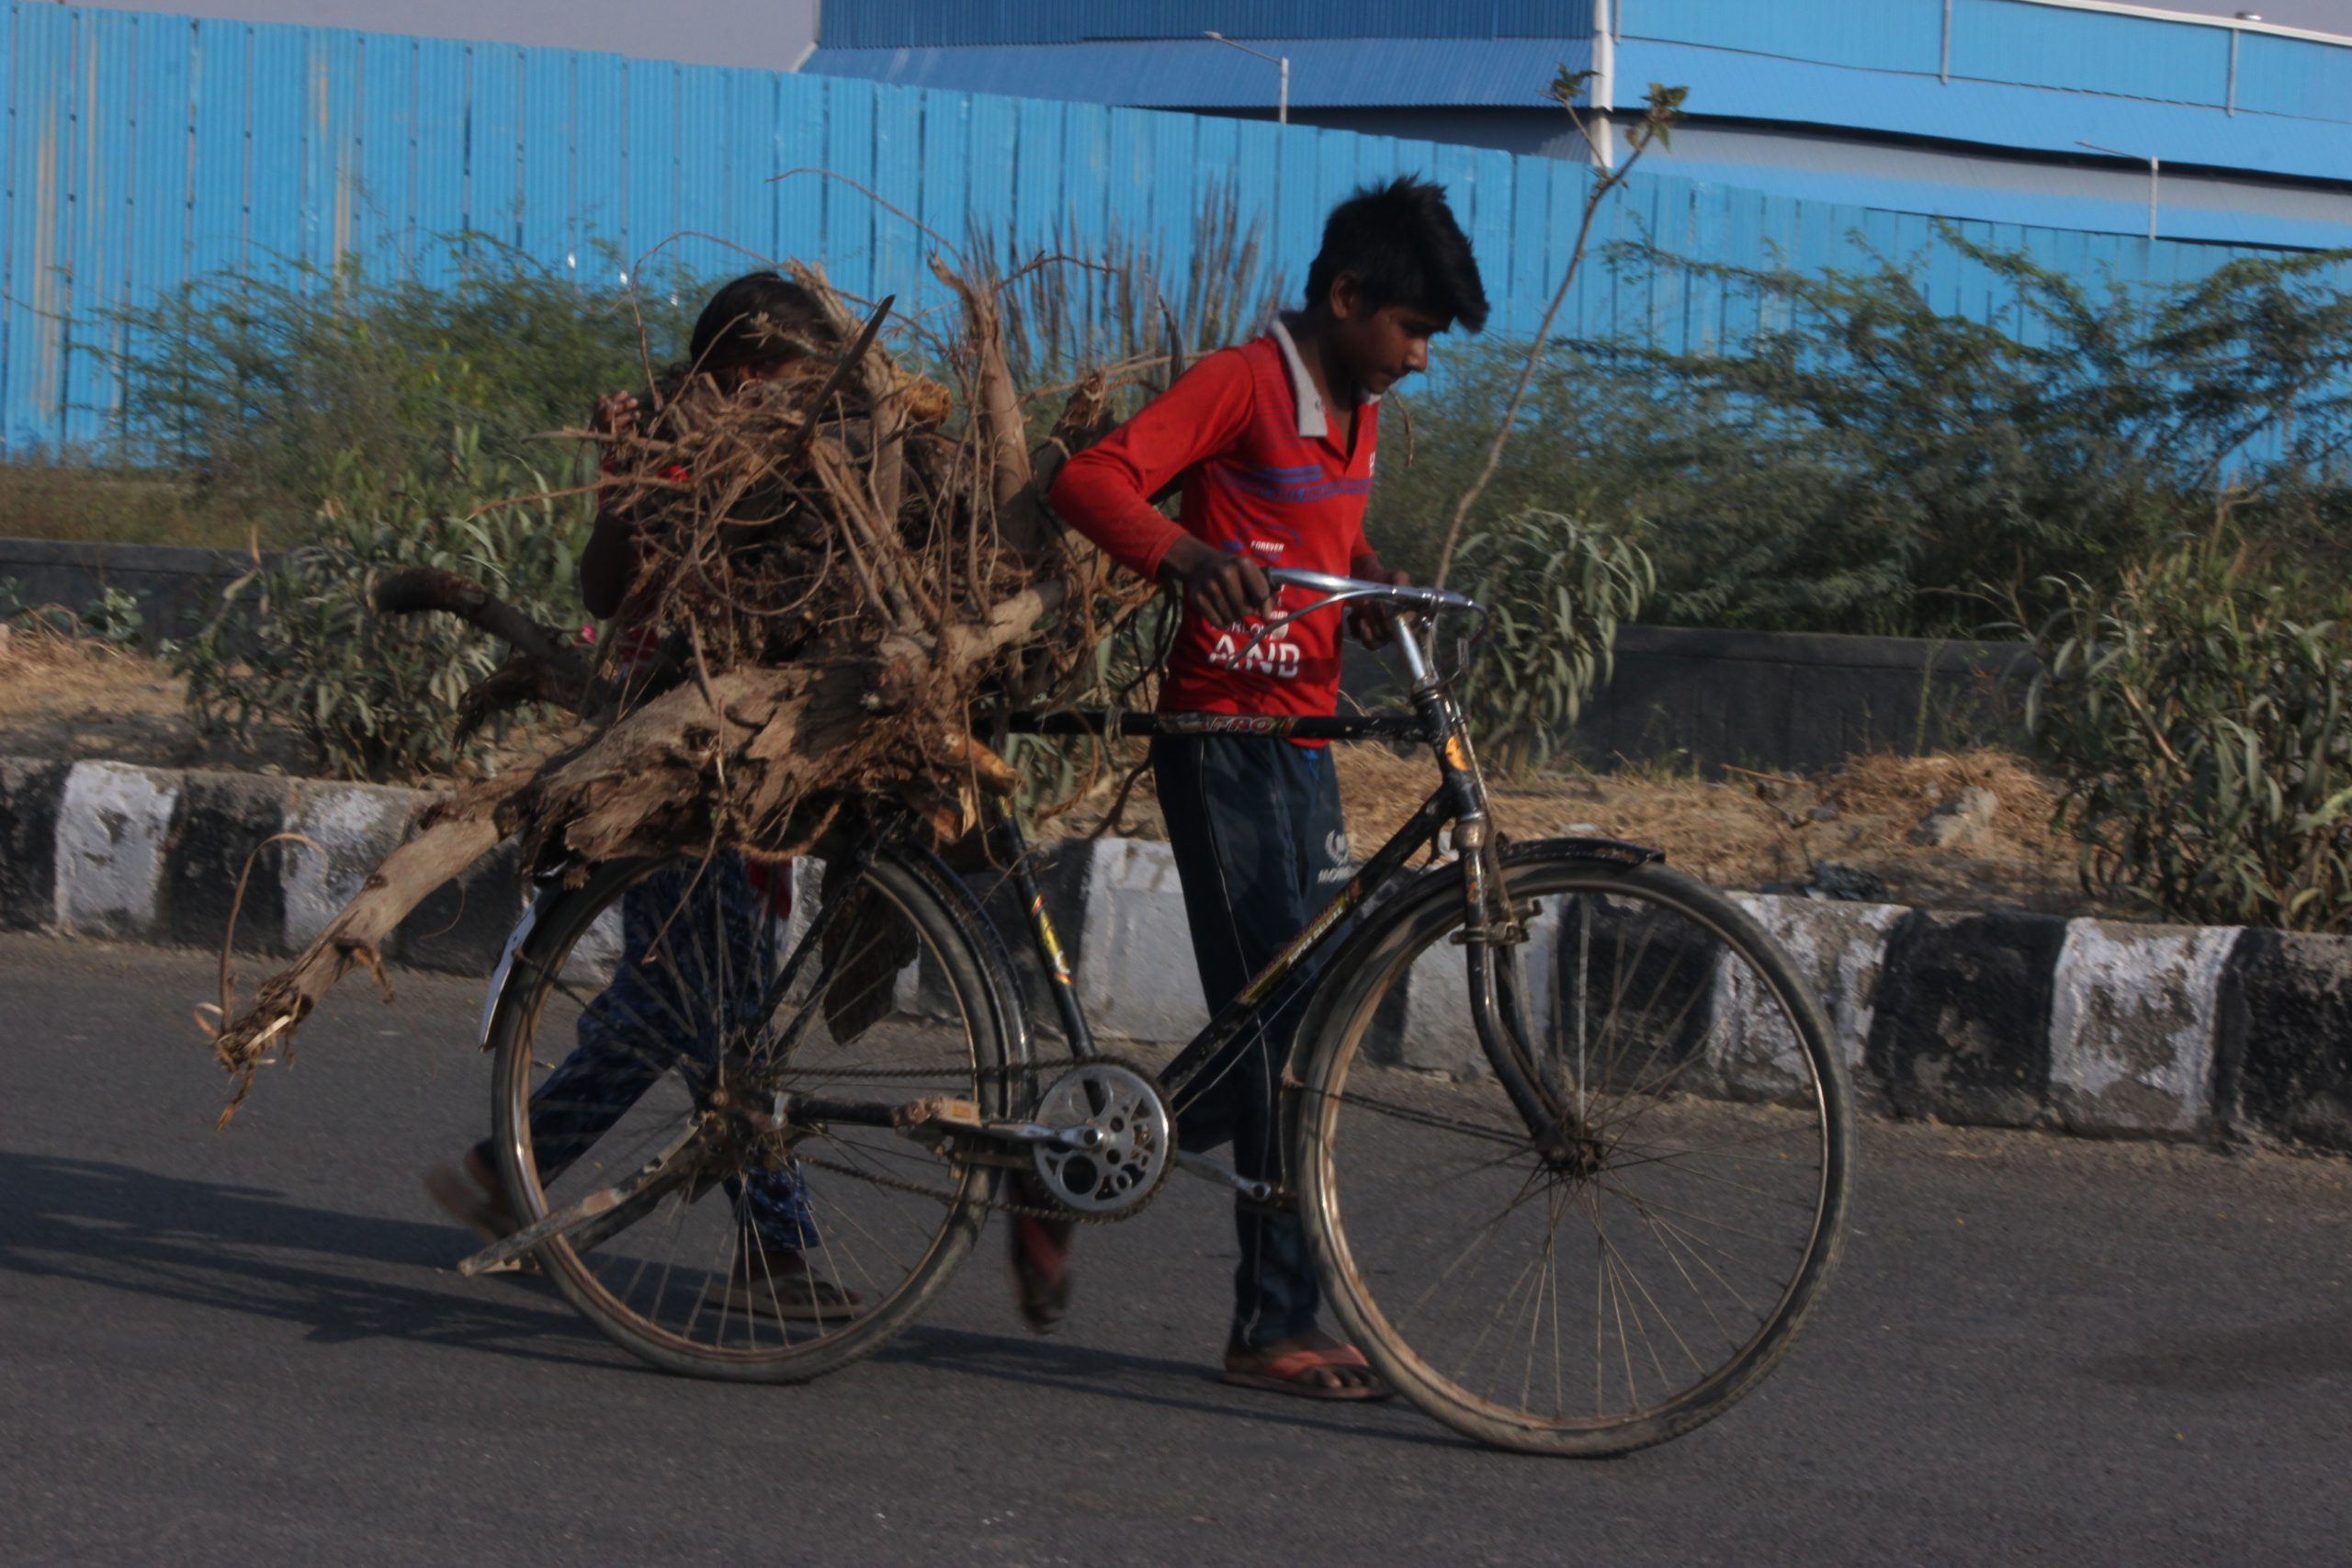 People carrying woods on bicycle